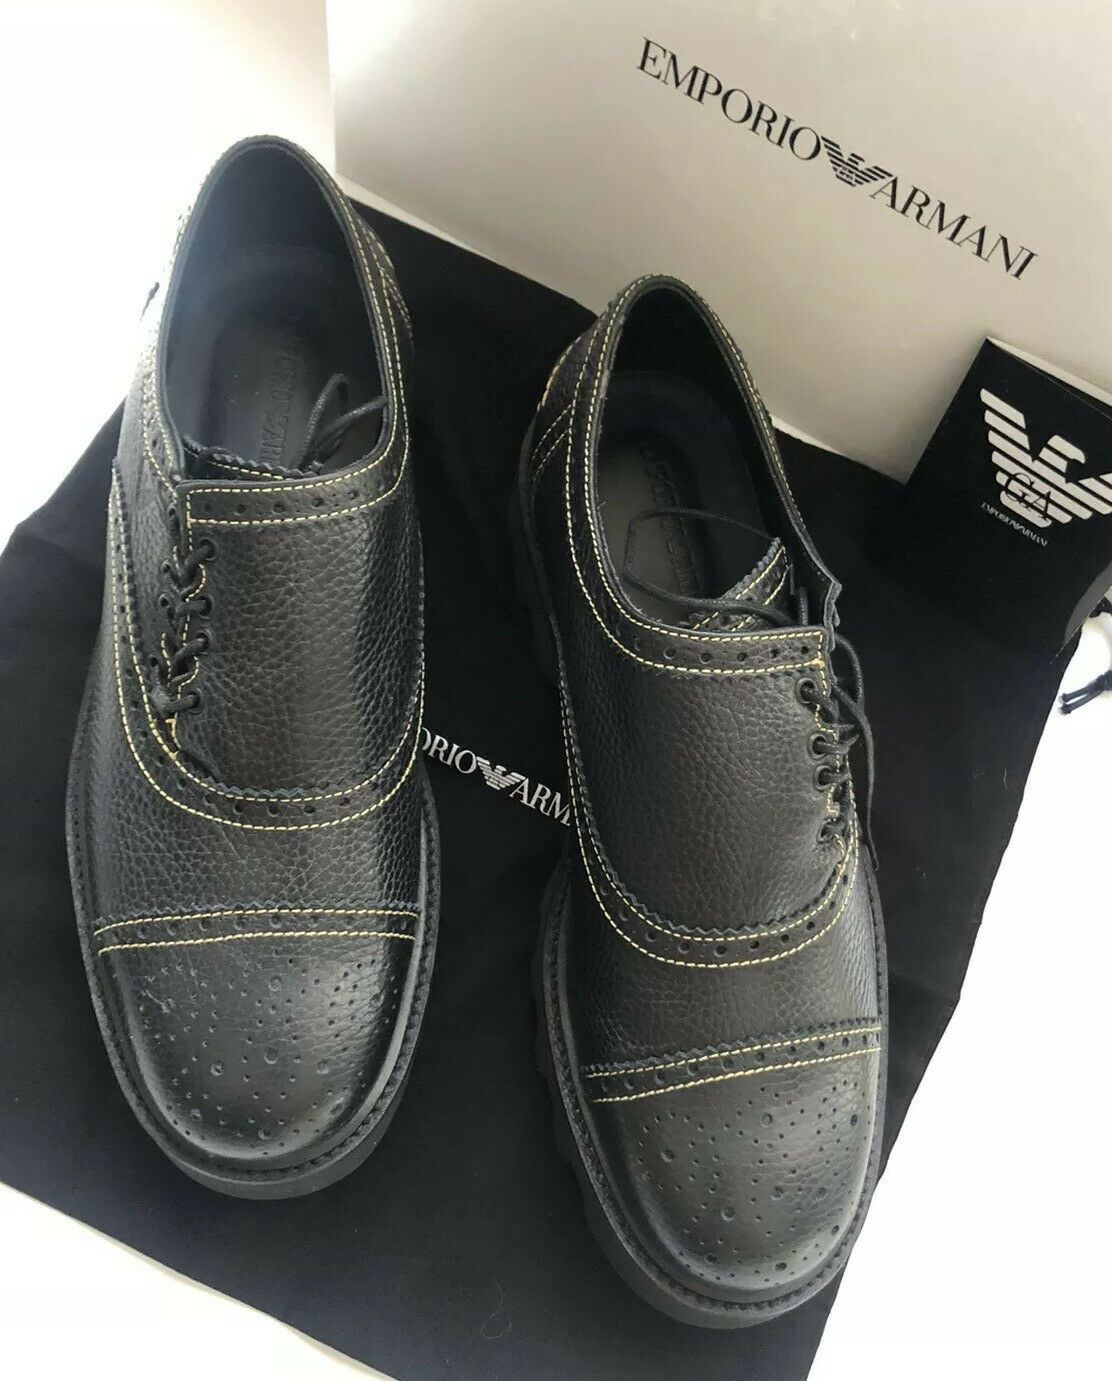 NIB $595 Emporio Armani Leather Men's Lug Sole French Laced Shoes 10.5 US X4C455